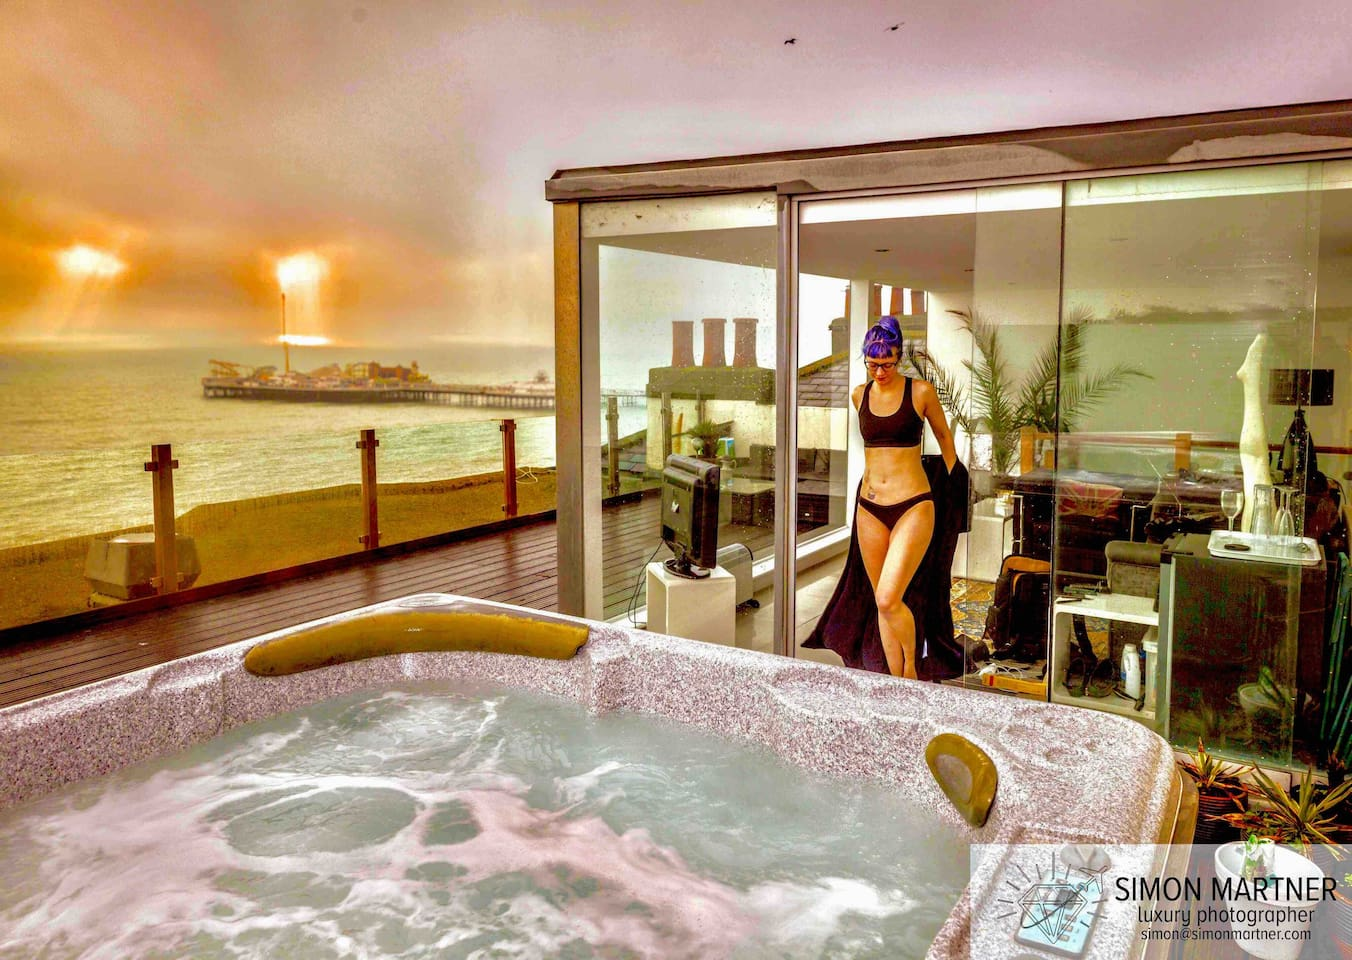 If it's something extraordinary you're looking for, you've found it. Imagine yourselves enjoying the privilege, seclusion & astonishing views of this magical place whilst luxuriating in the only frontline hot tub in Brighton.  Photo: Simon Martner